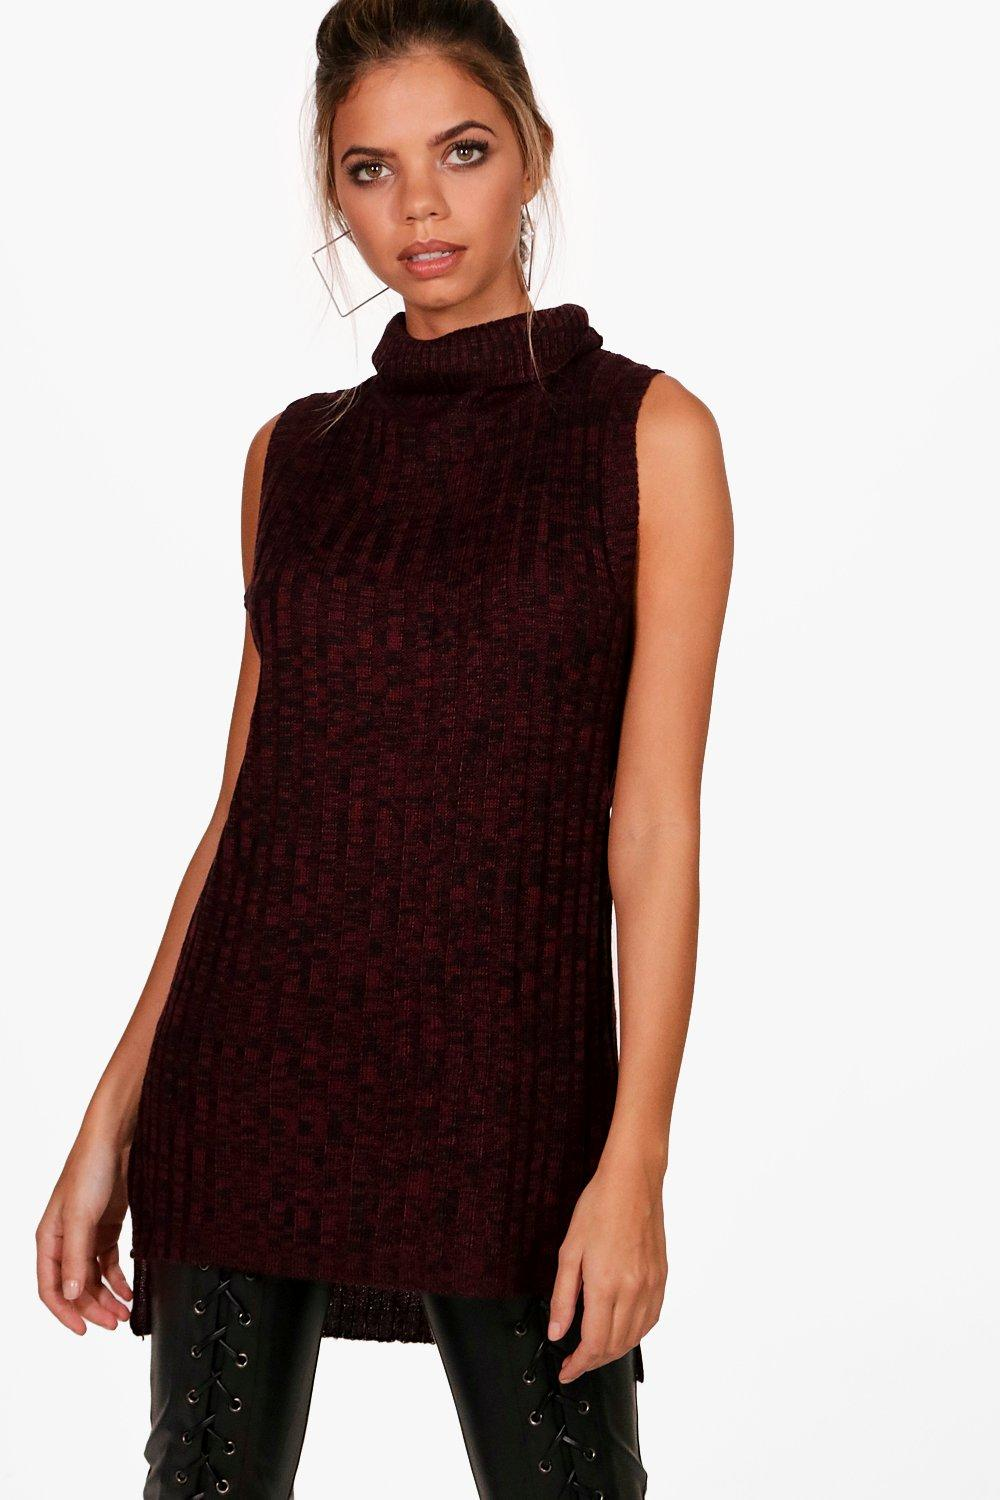 c9595c936d5e8 Lily Chunky Cowl Neck Sleeveless Top. Hover to zoom